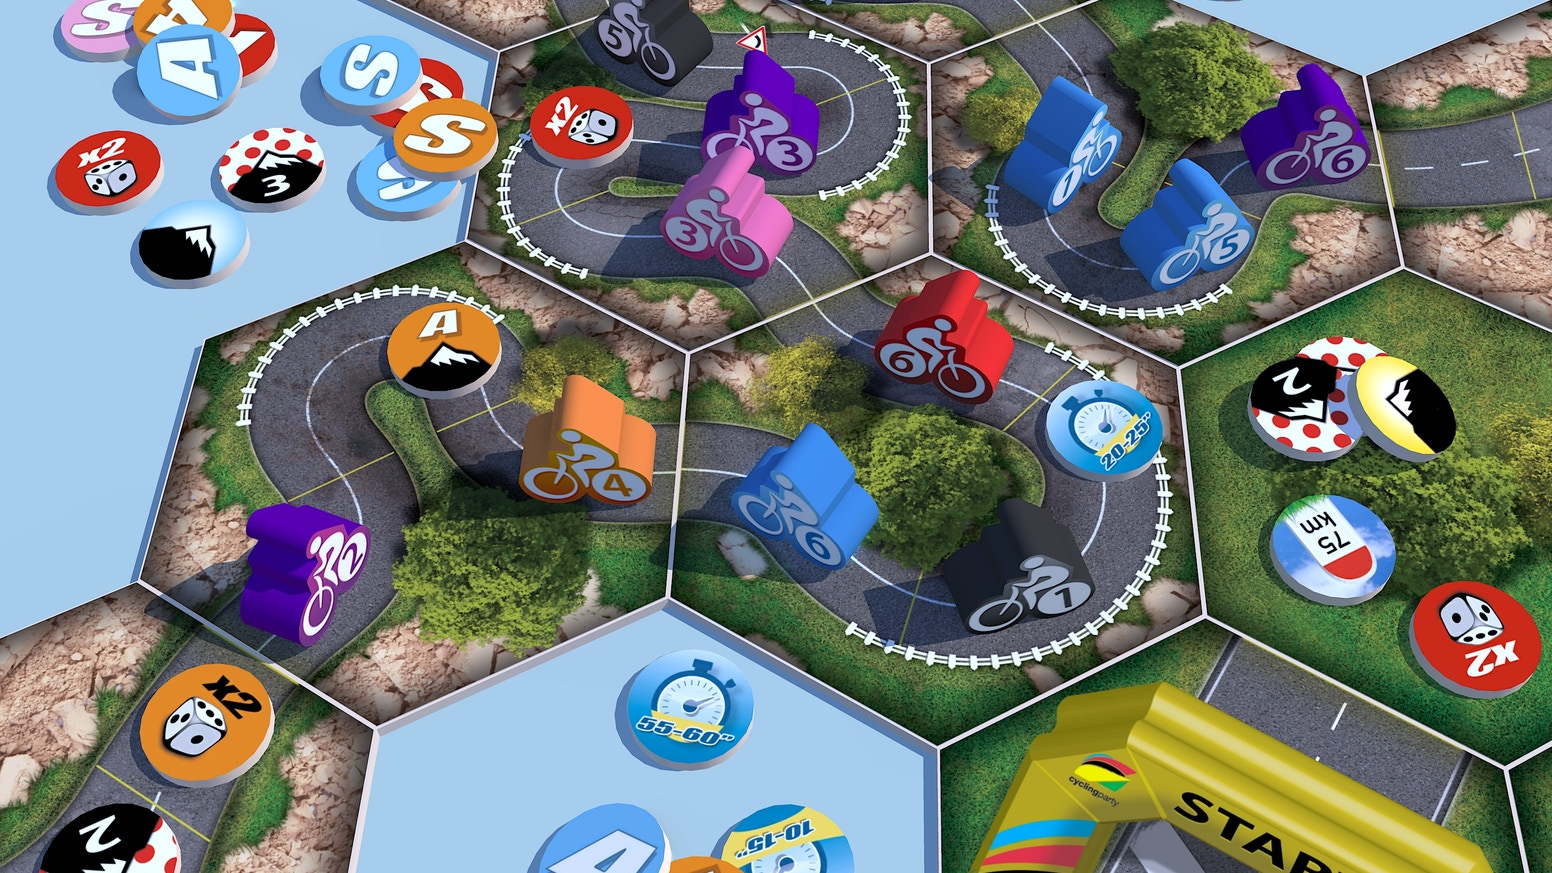 CYCLING PARTY is a board game that brings together the excitement of road cycling as a sport and the enjoyment of strategy games.